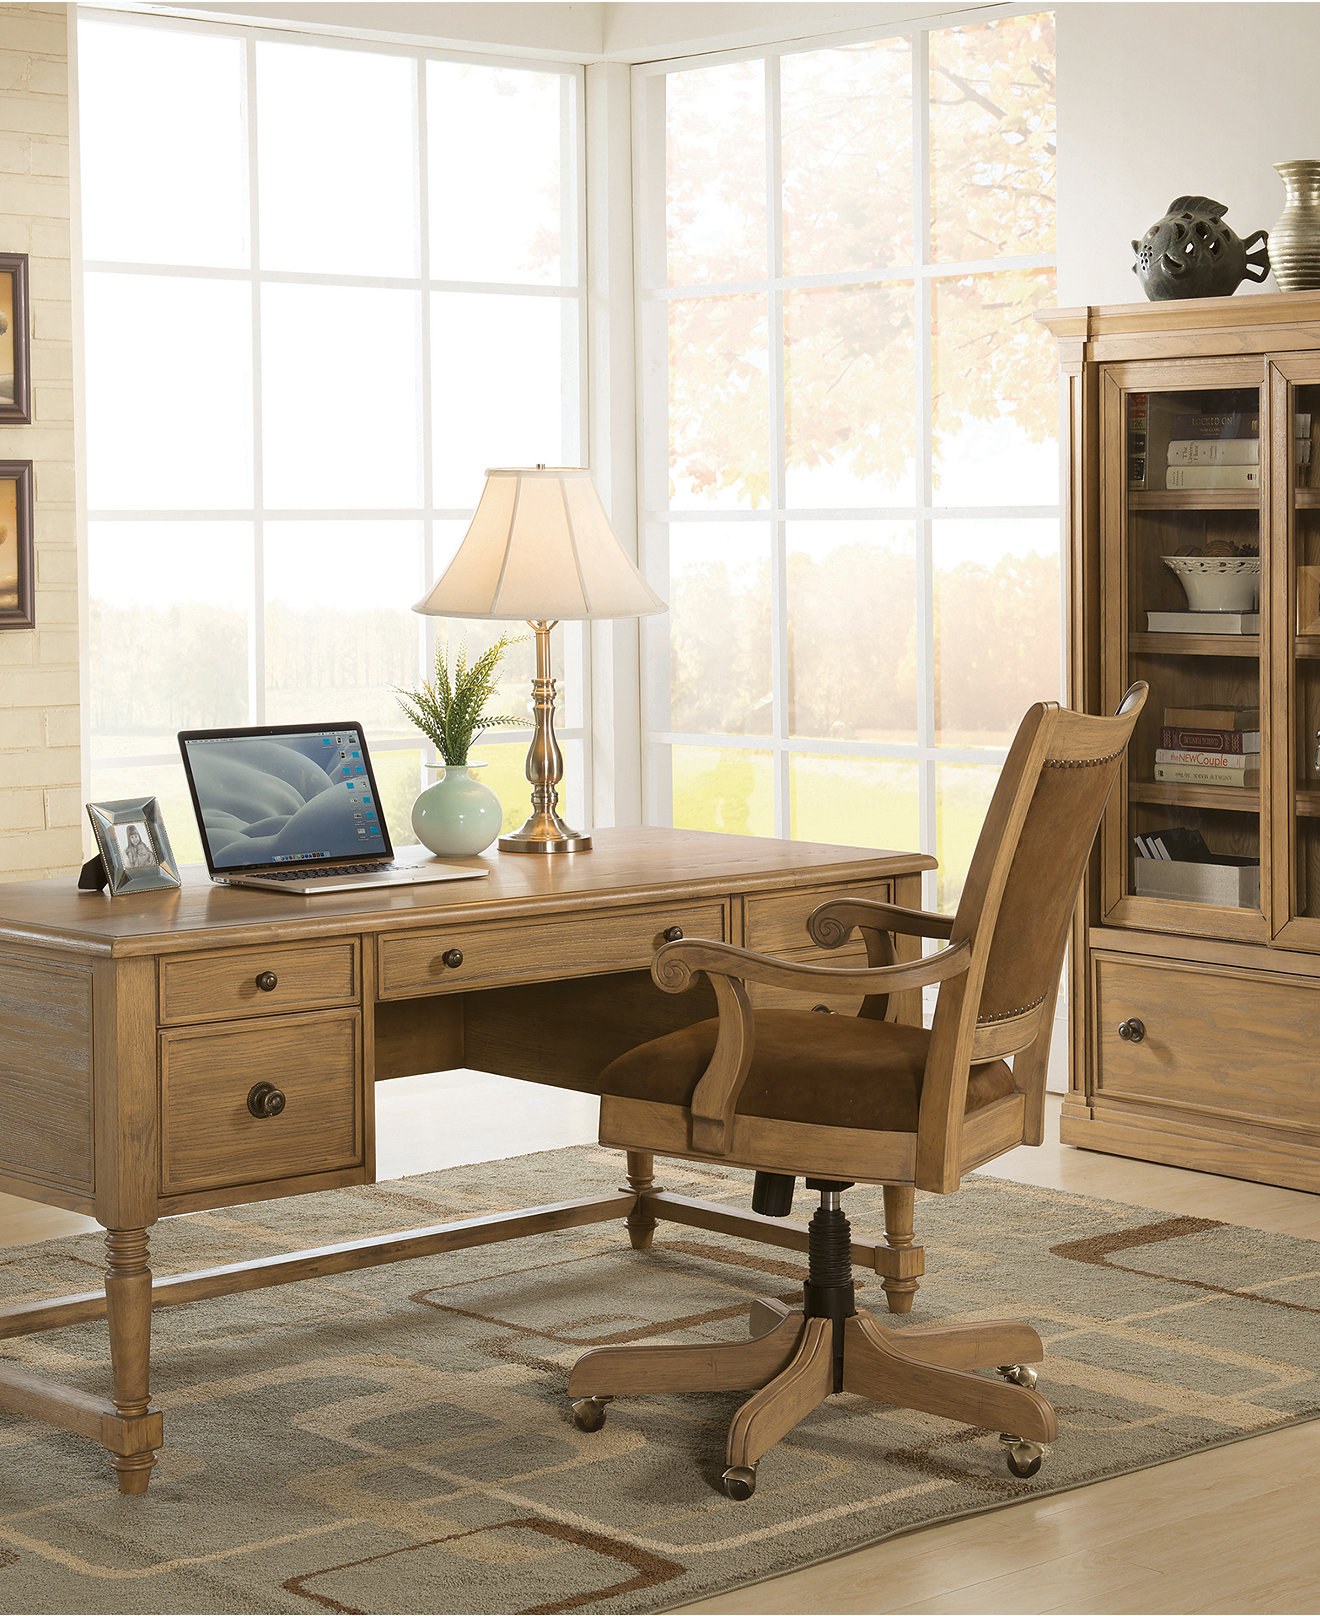 Sherborne Home Office Furniture Collection  Created for Macy s   Created  for Macy s   For The Home   Macy s. Sherborne Home Office Furniture Collection  Created for Macy s